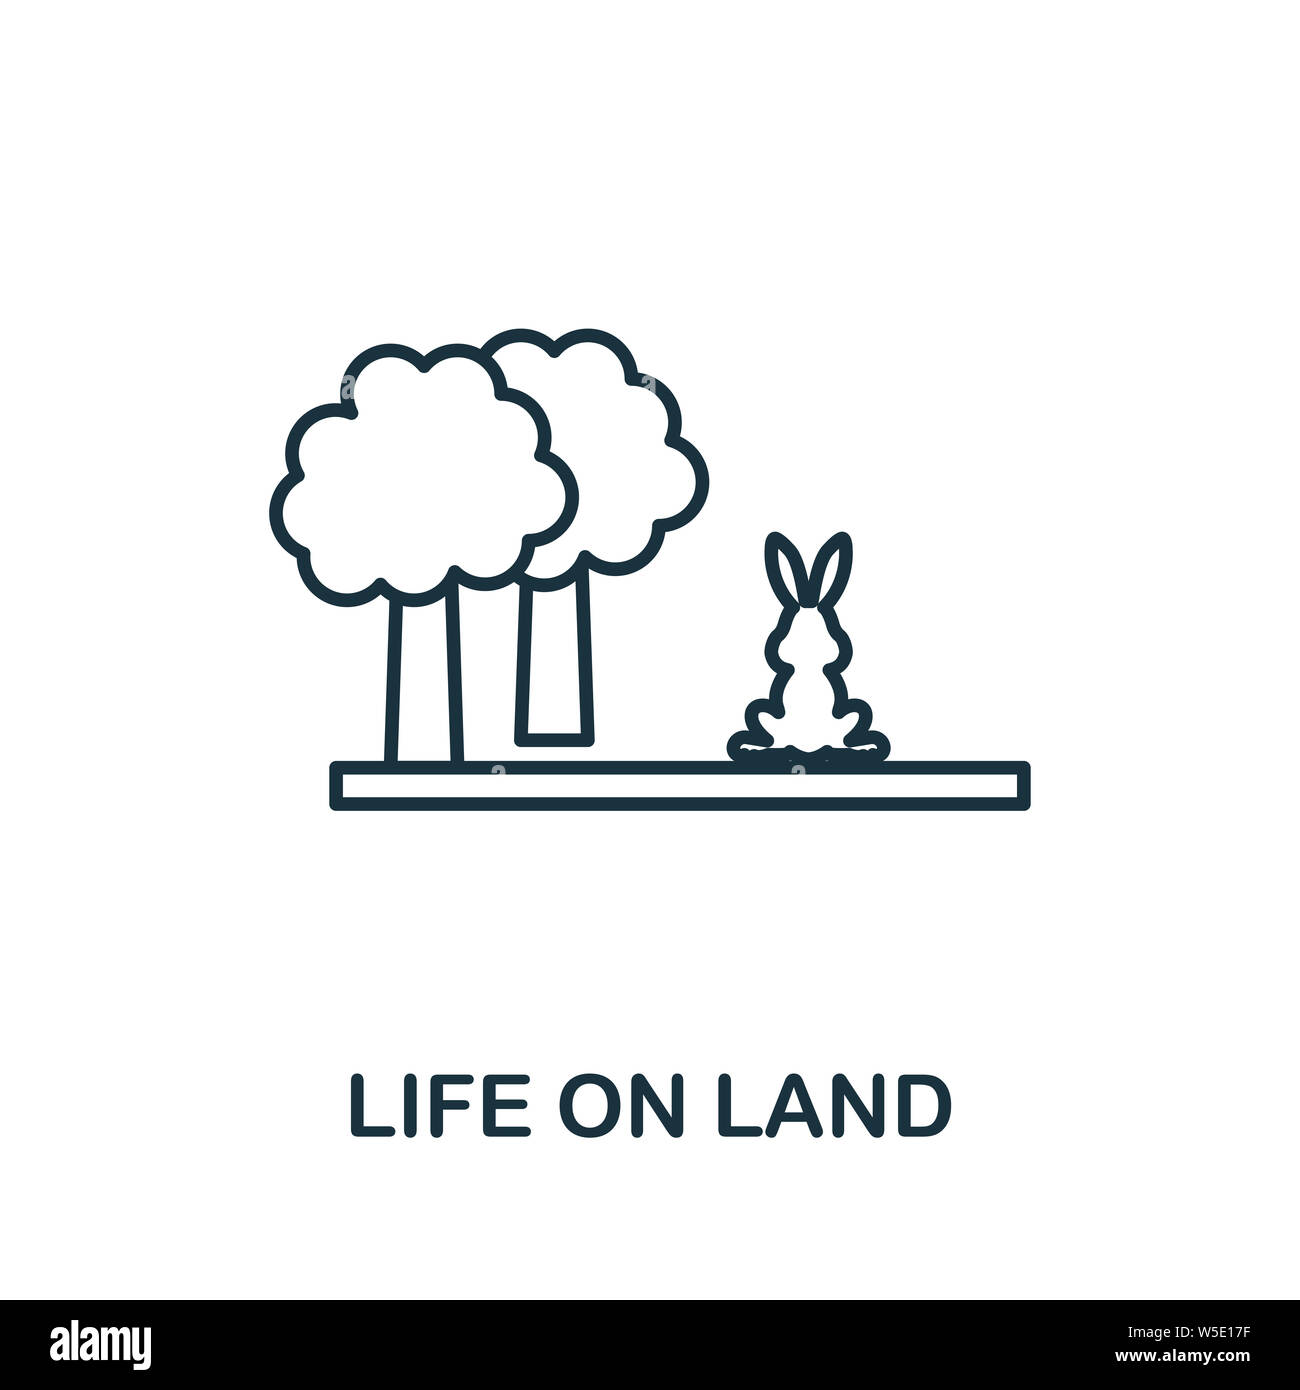 Life On Land outline icon. Thin line style from community icons collection. Pixel perfect simple element life on land icon for web design, apps Stock Photo